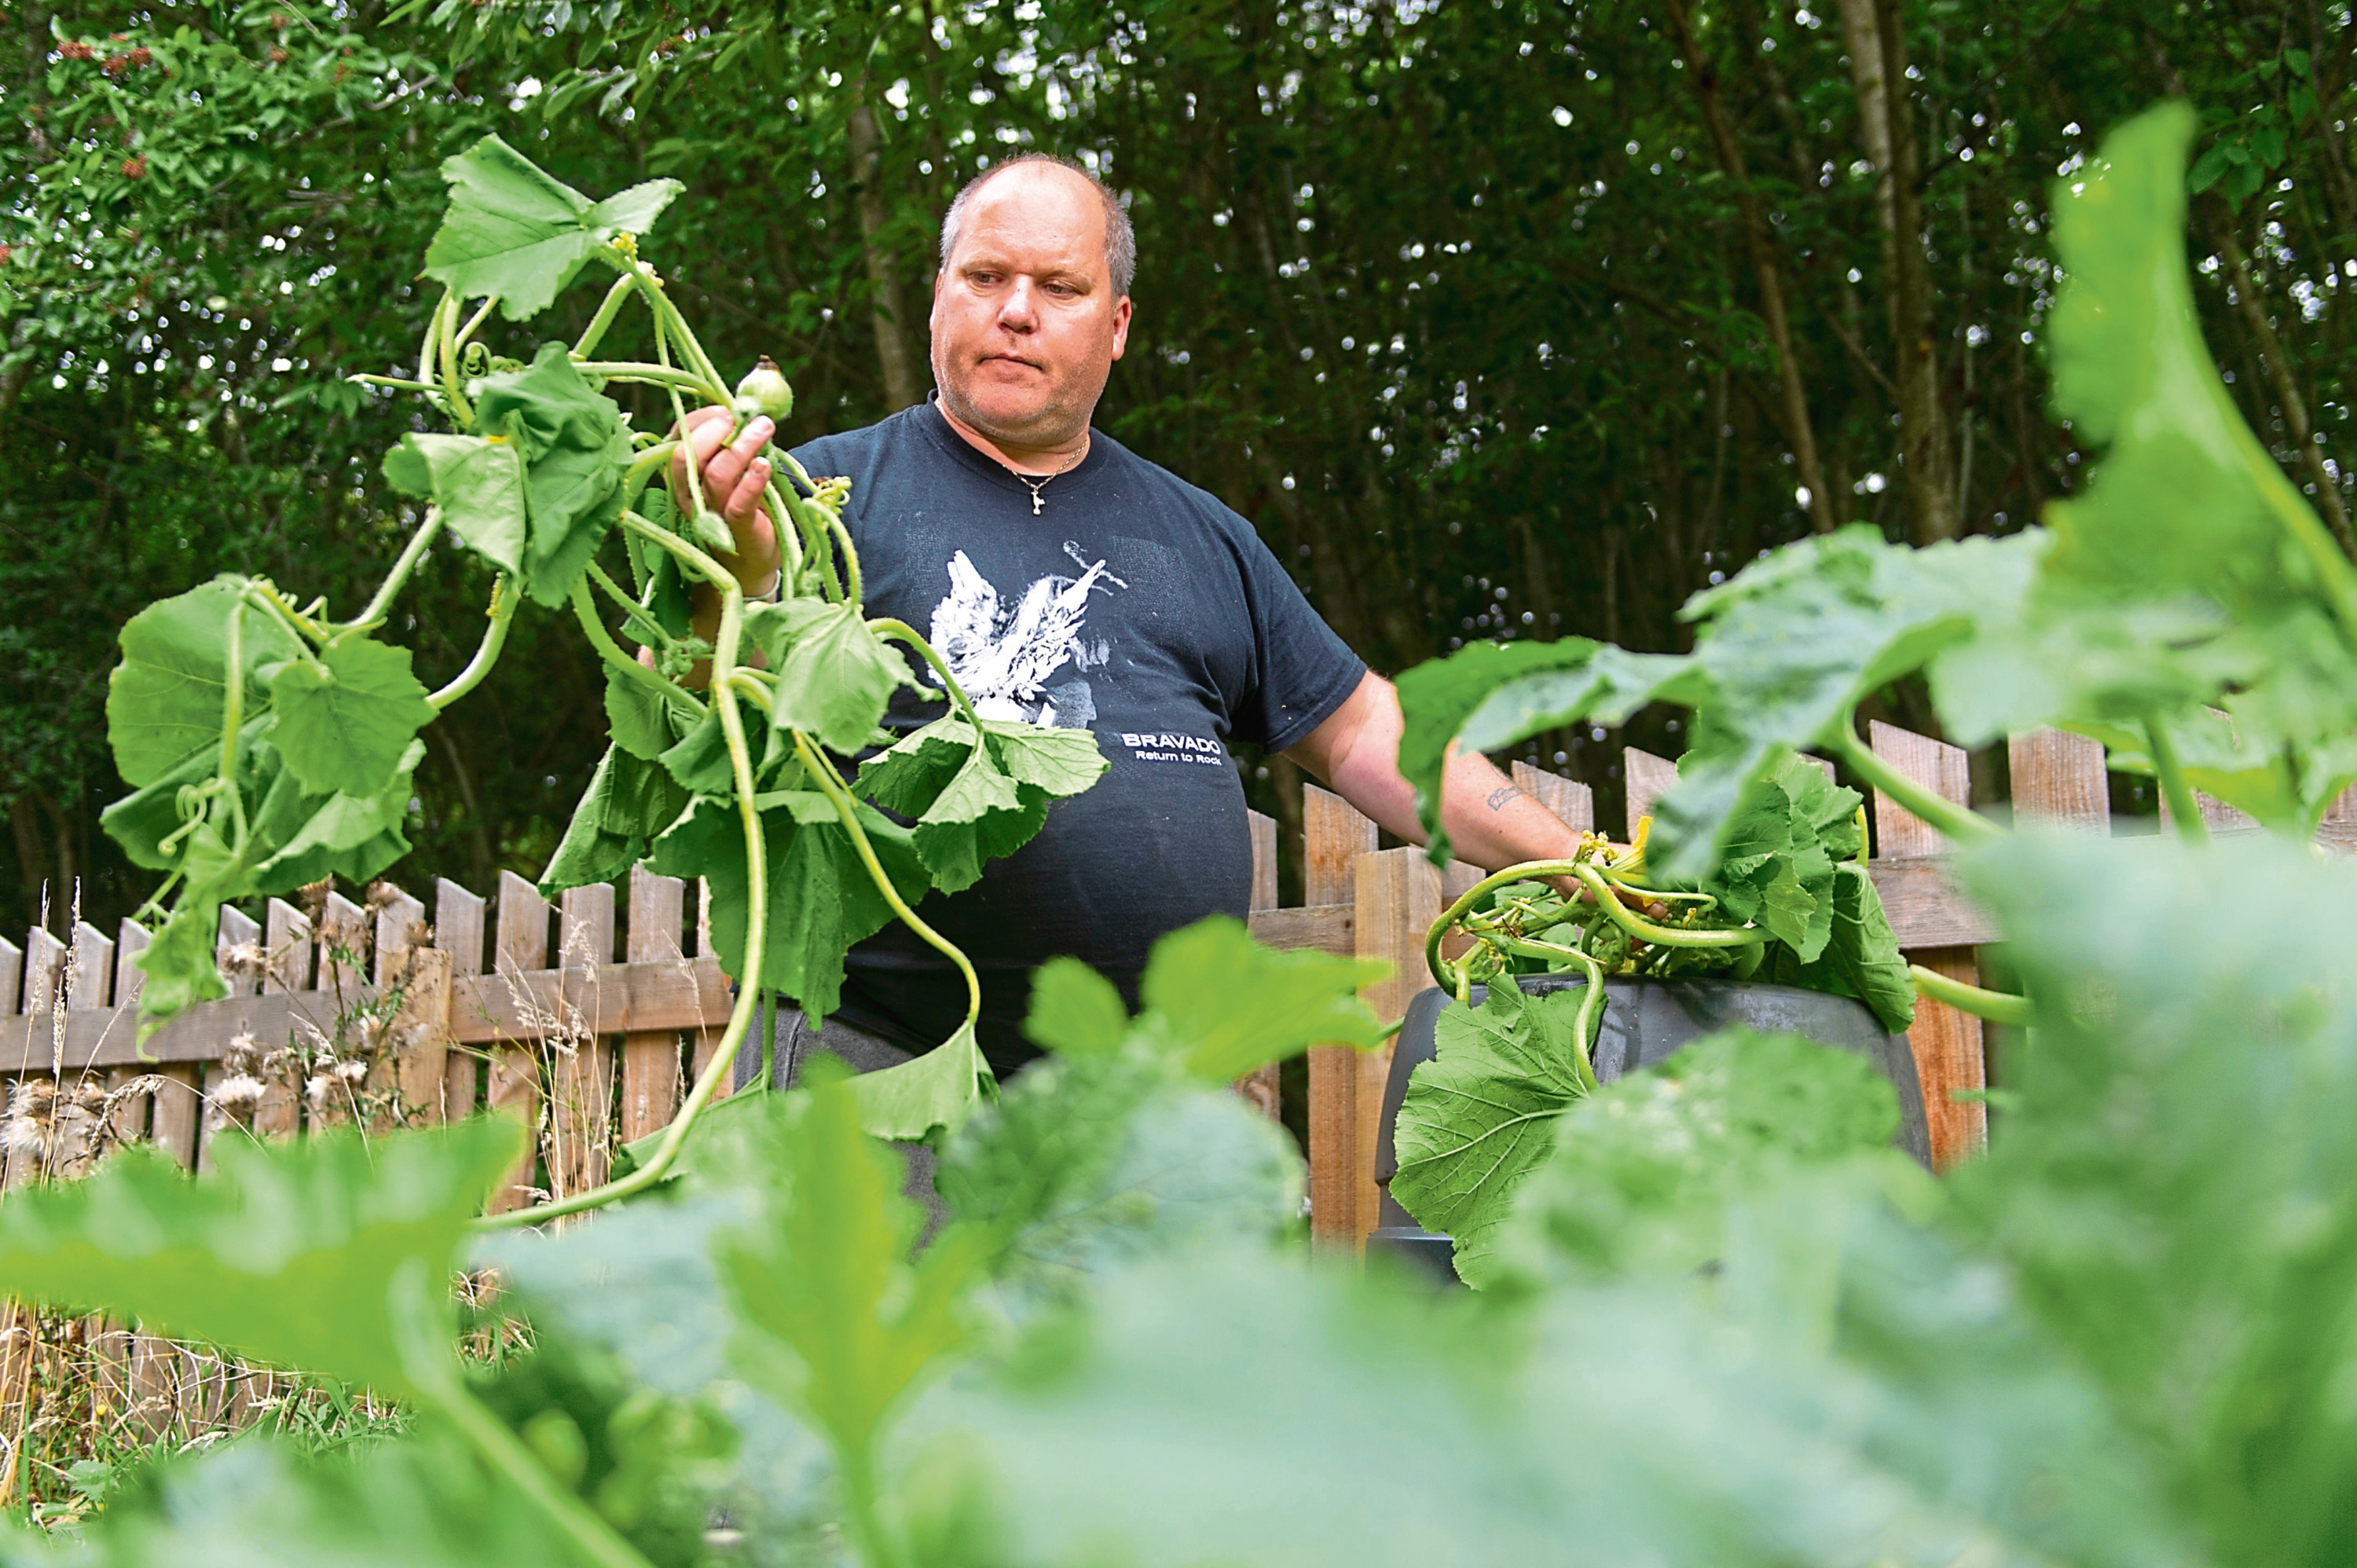 Mick Vine shows the damage done to a crop of pumpkins by vandals at the Whorterbank Community Garden.